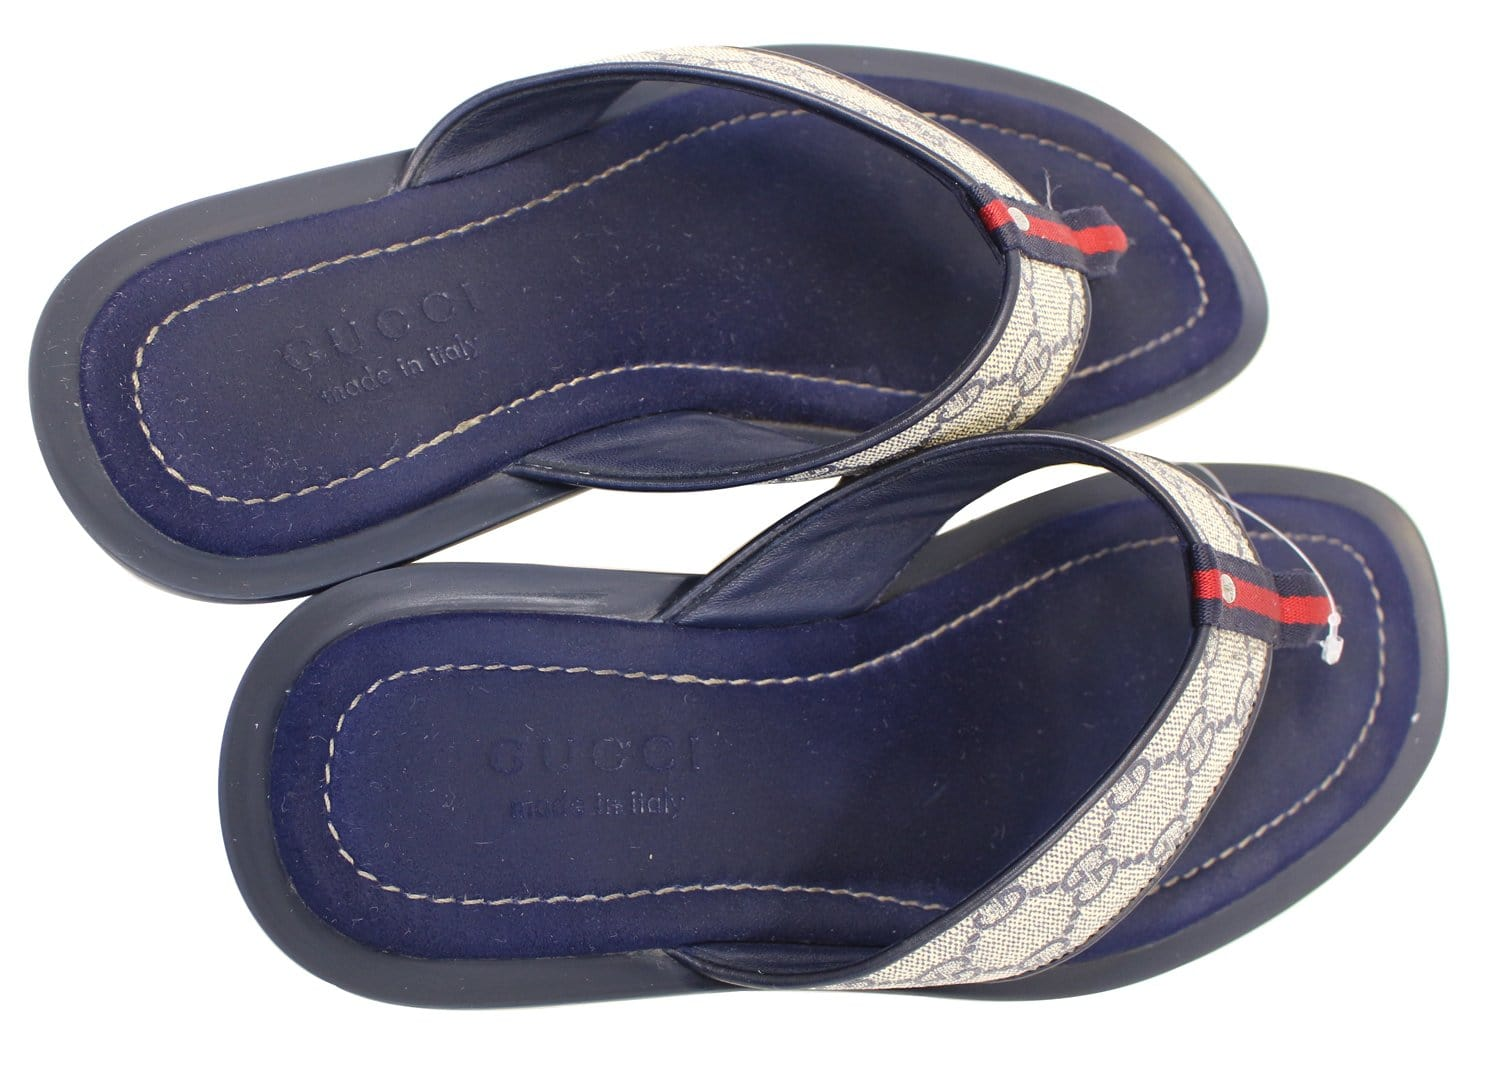 Gucci Mens Gg Supreme Blue Flip Flops Sandals Size 9 G-6047